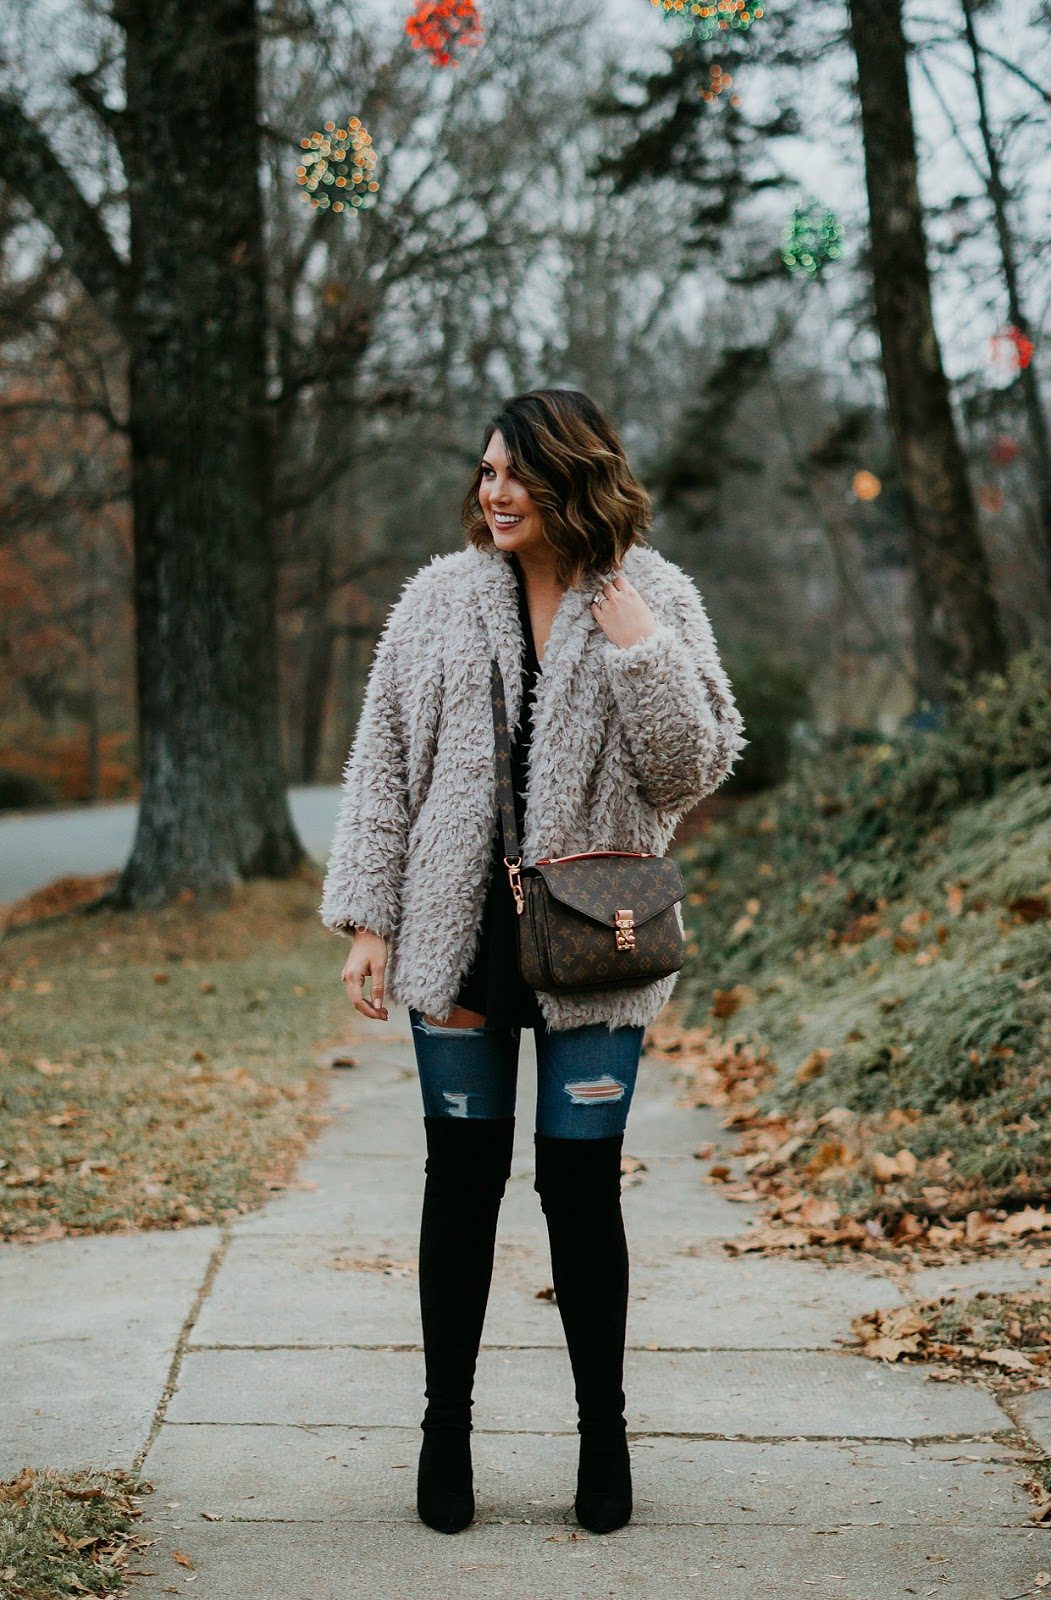 teddy coat outift, xo samantha brooke, life and messy hair, nc photography, sam brooke photo, nc blogger, louis vuitton pochette metis, louis vuitton crossbody, over the knee boots goodnight macaroon